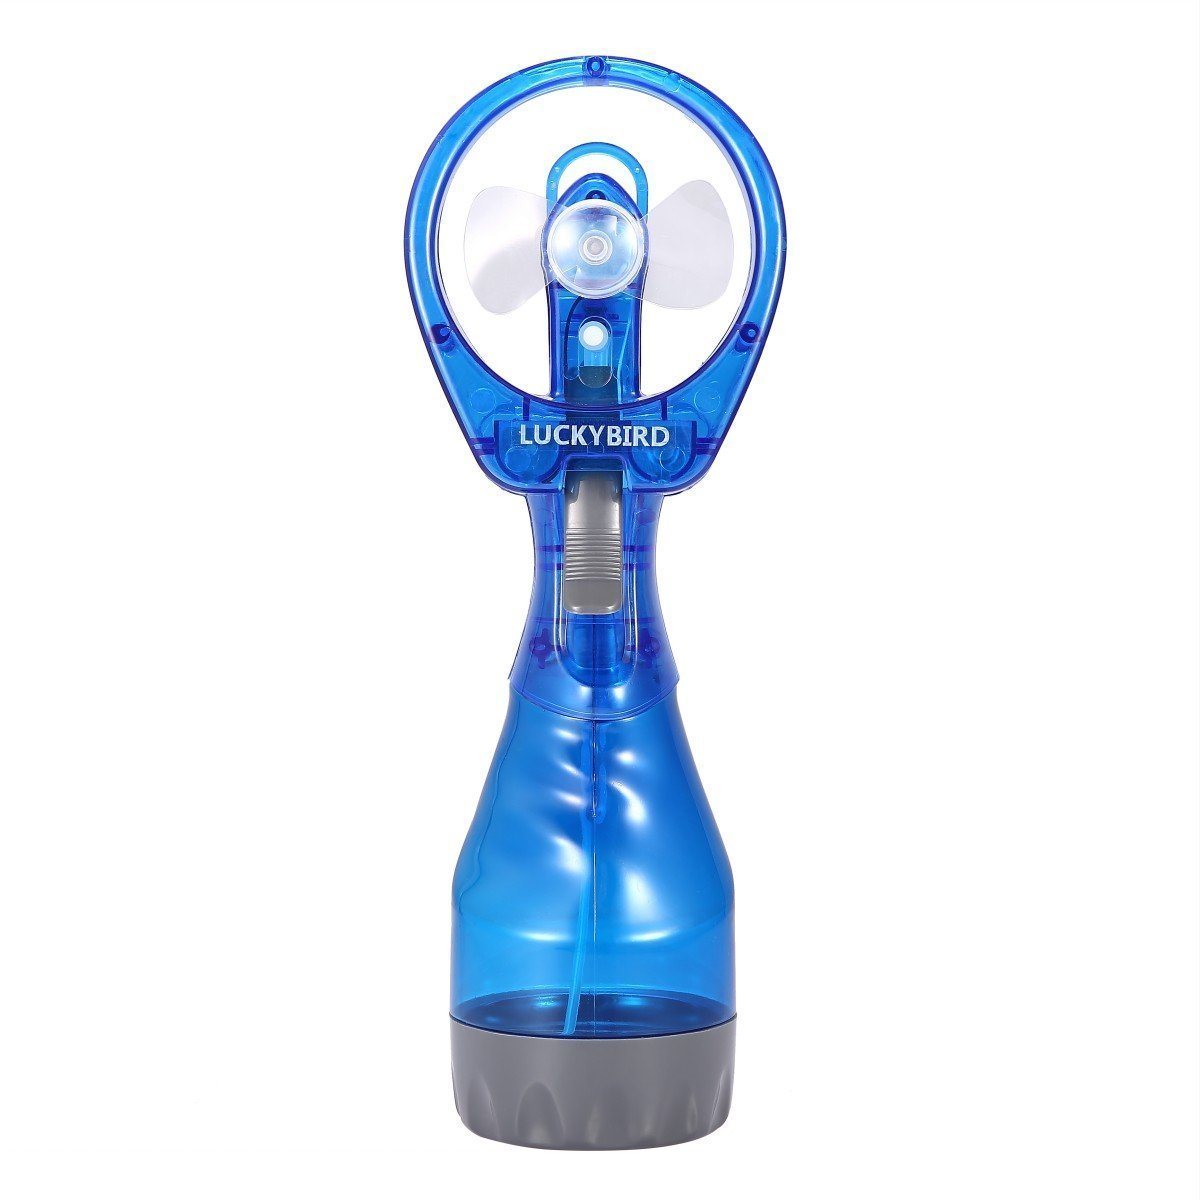 Misting Fan, Luckybird Deluxe Handheld Water Misting Fans (Blue)